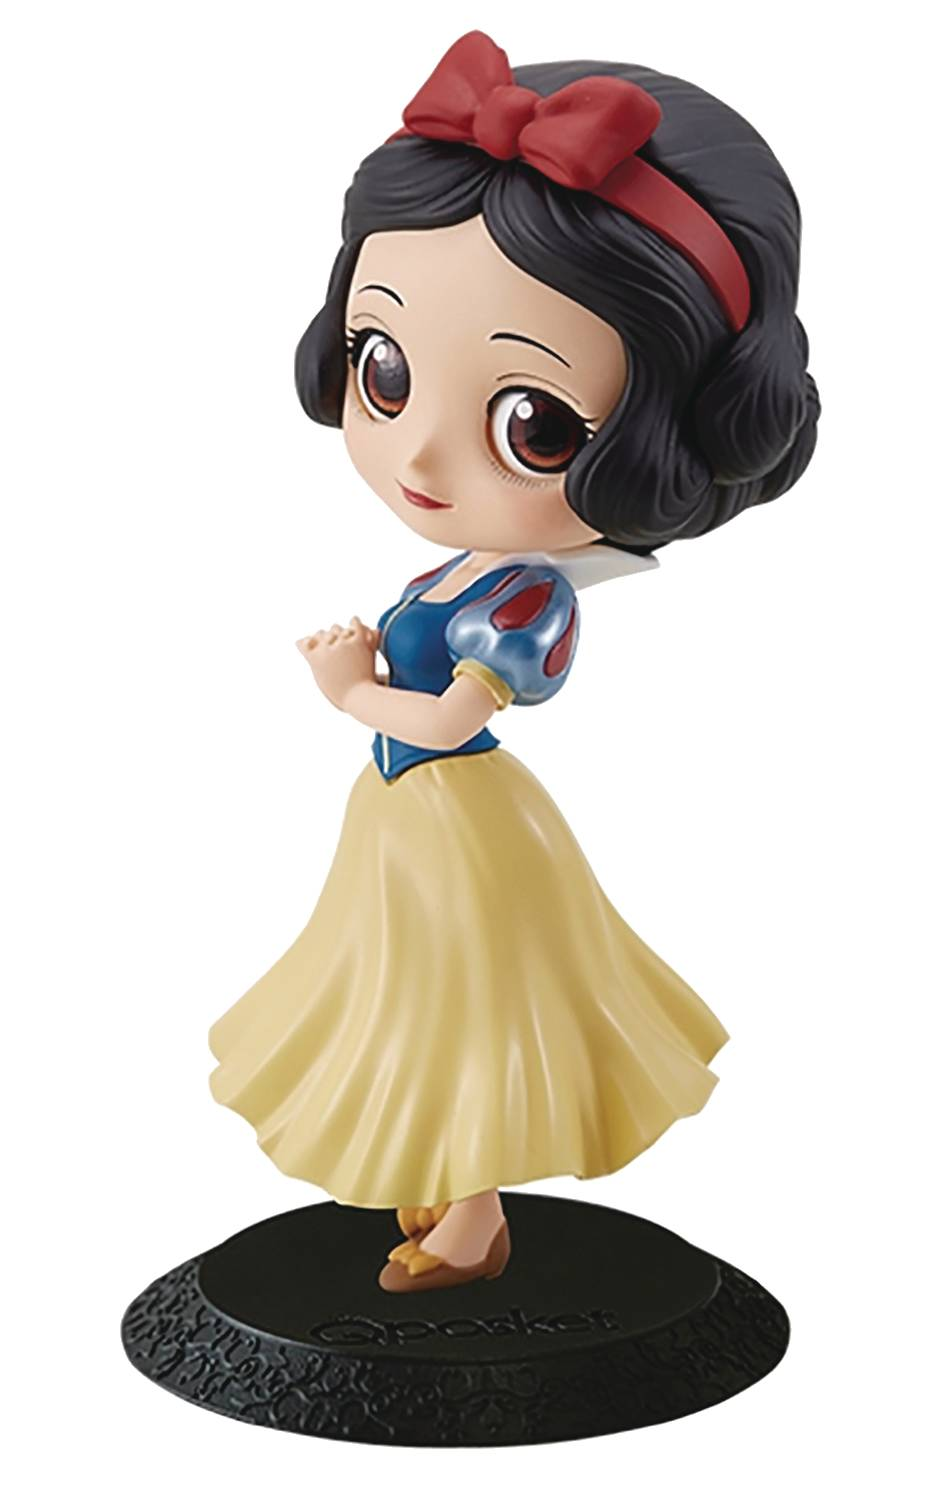 Banpresto Disney Snow White Q-Posket Figure